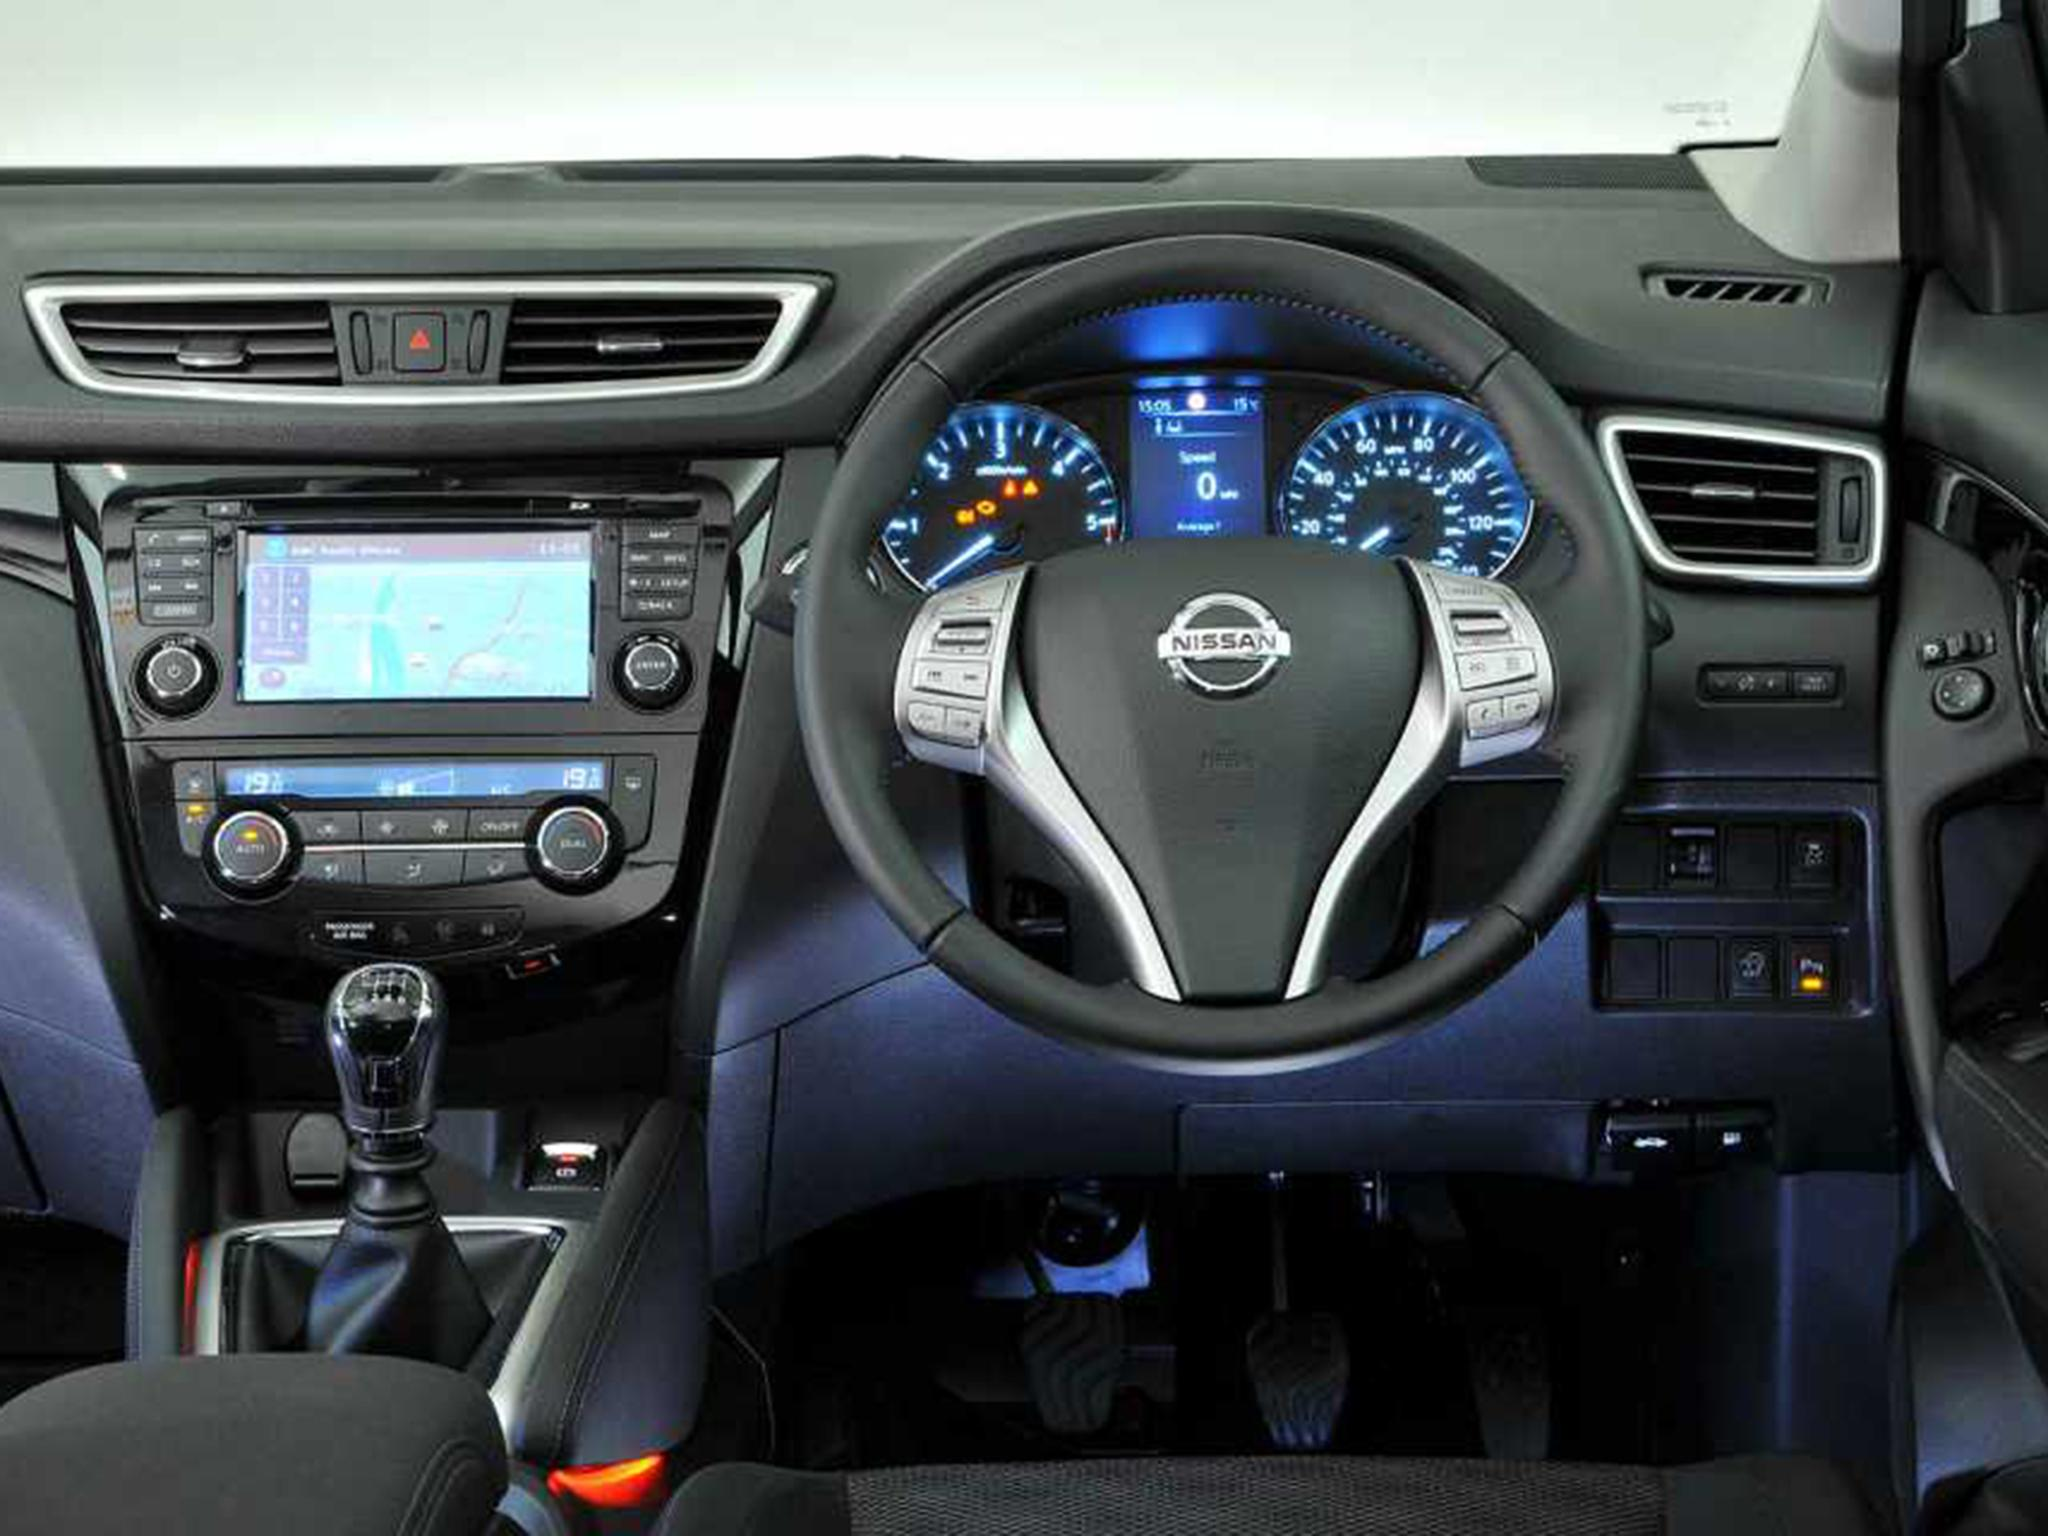 nissan qashqai ten reasons to buy the fantastic small suv the rh independent co uk nissan qashqai user manual 2018 nissan qashqai user manual 2018